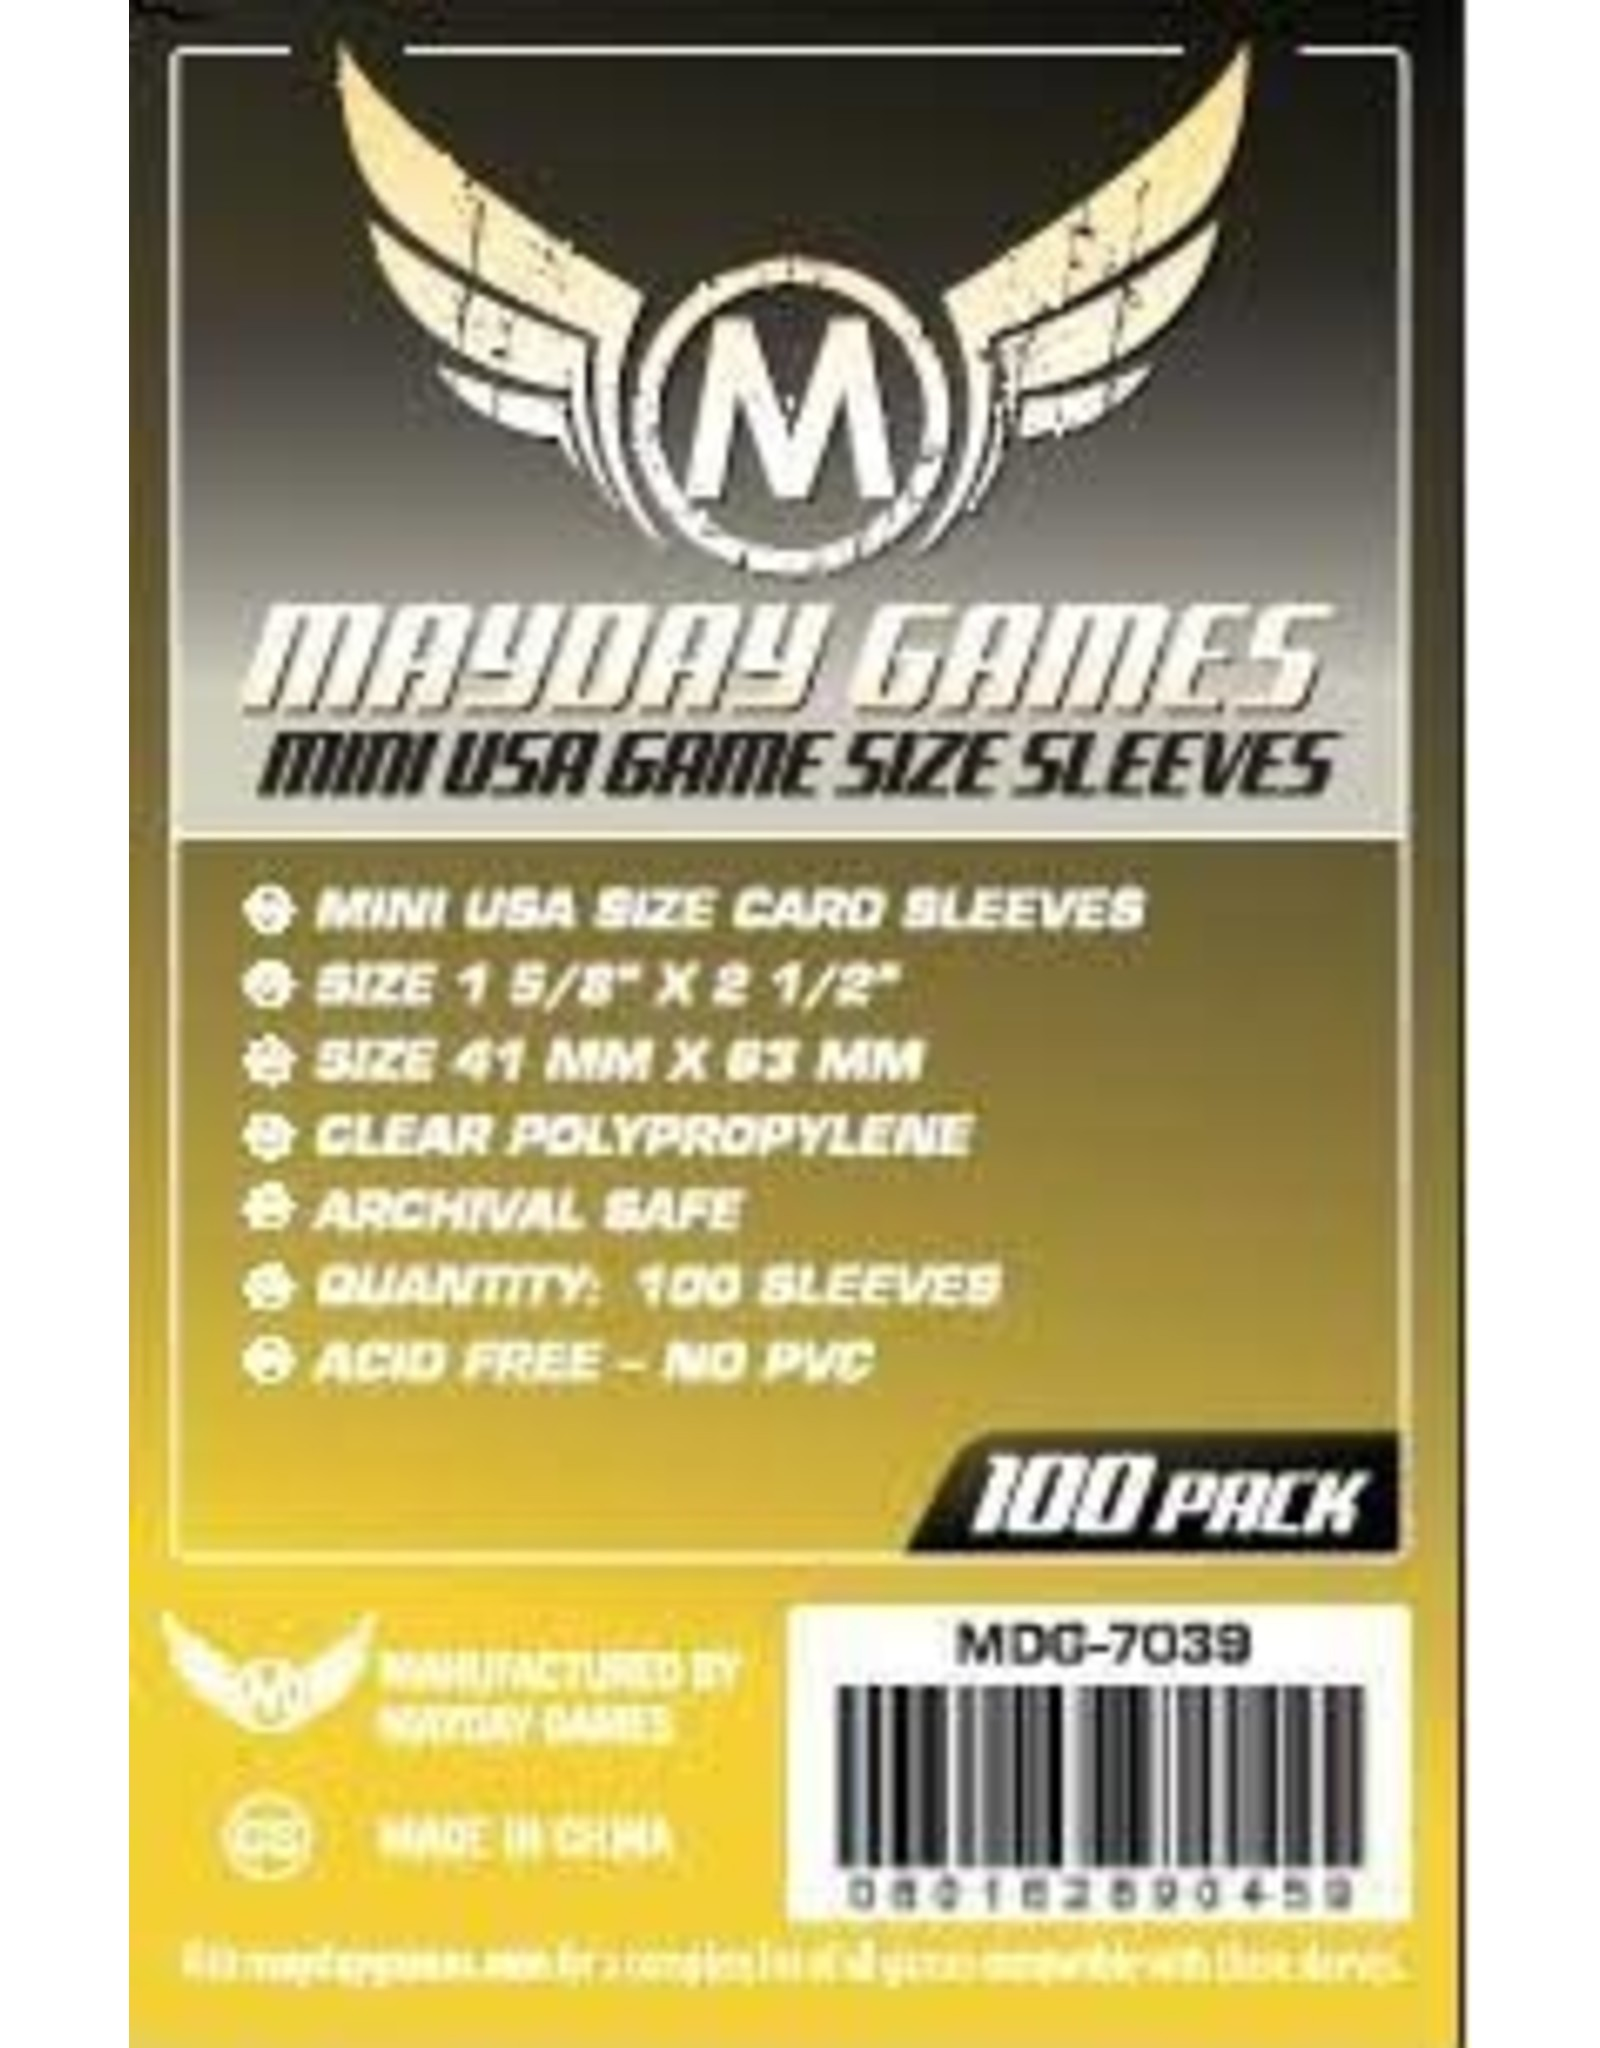 Mayday Games Mini USA Yellow 41mm x 63mm Sleeves (100)